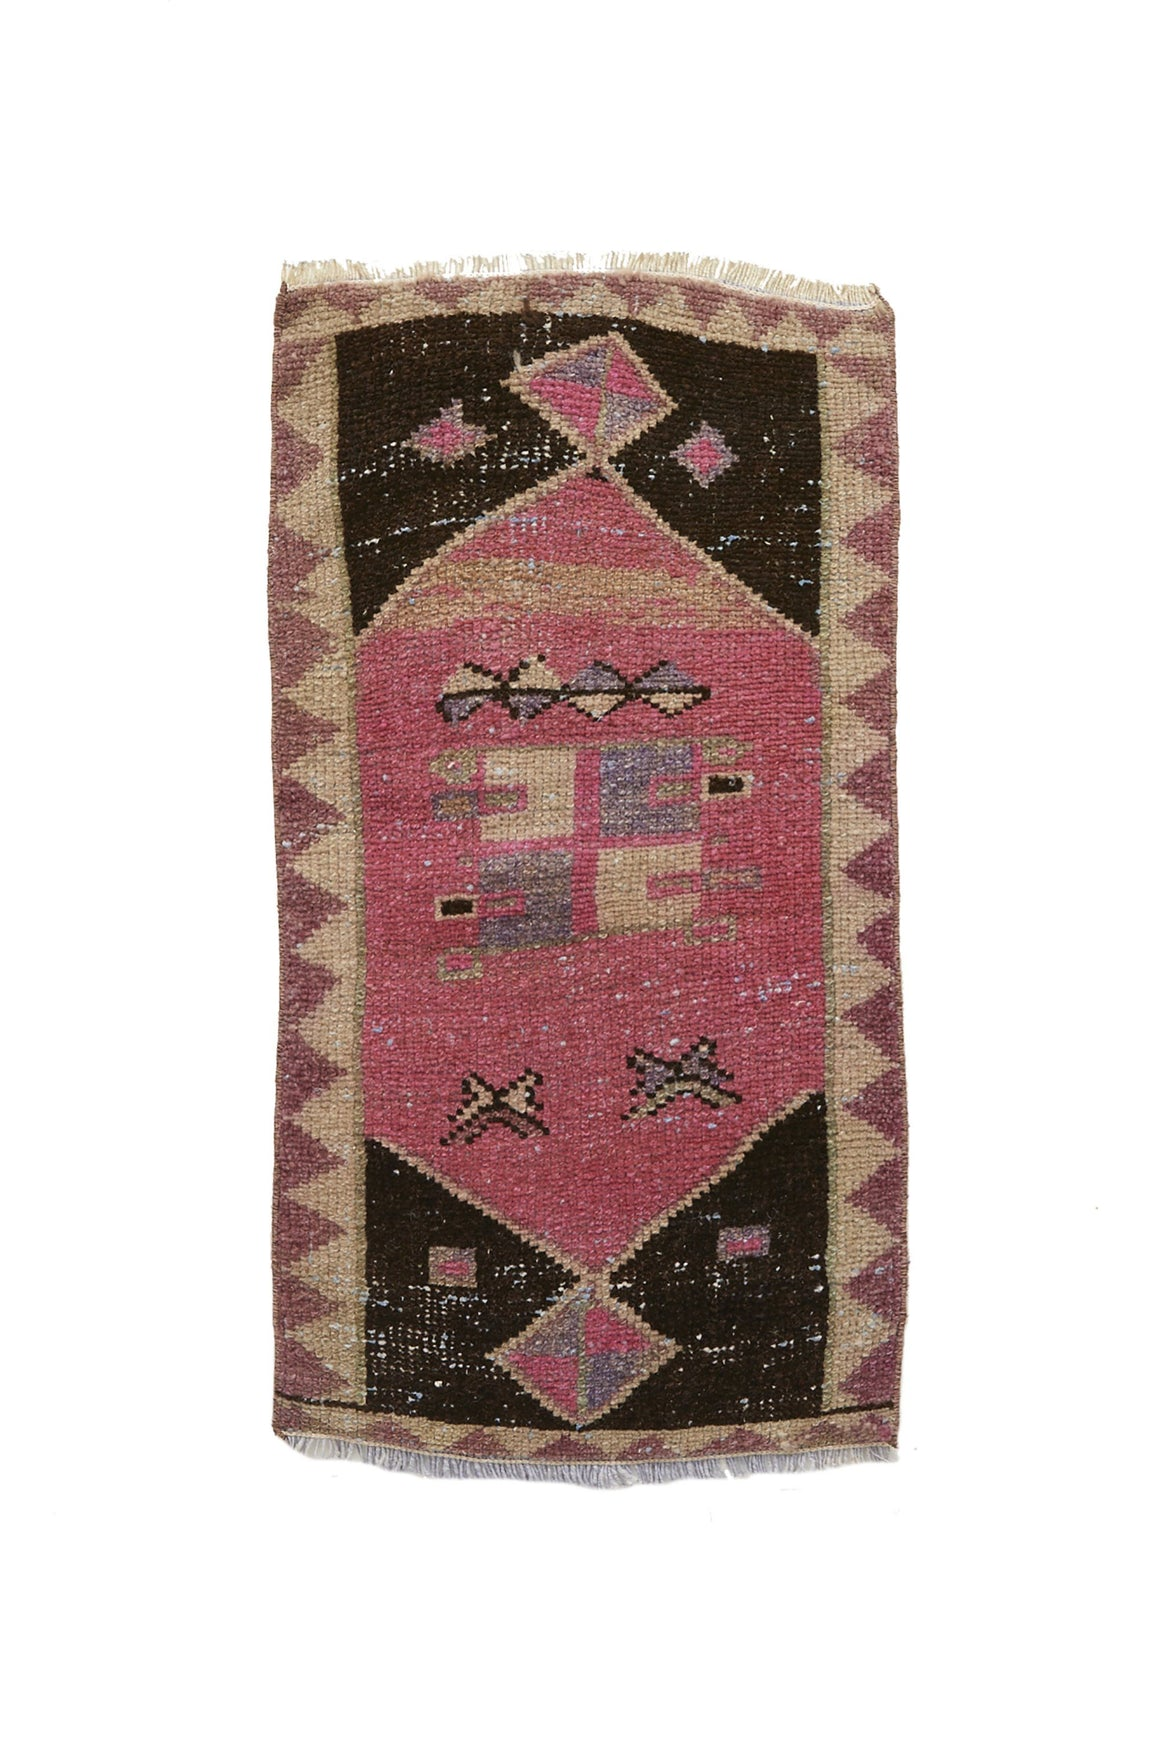 No. 614 Mini Rug - 1'5'' x 2'6'' - Canary Lane - Curated Textiles